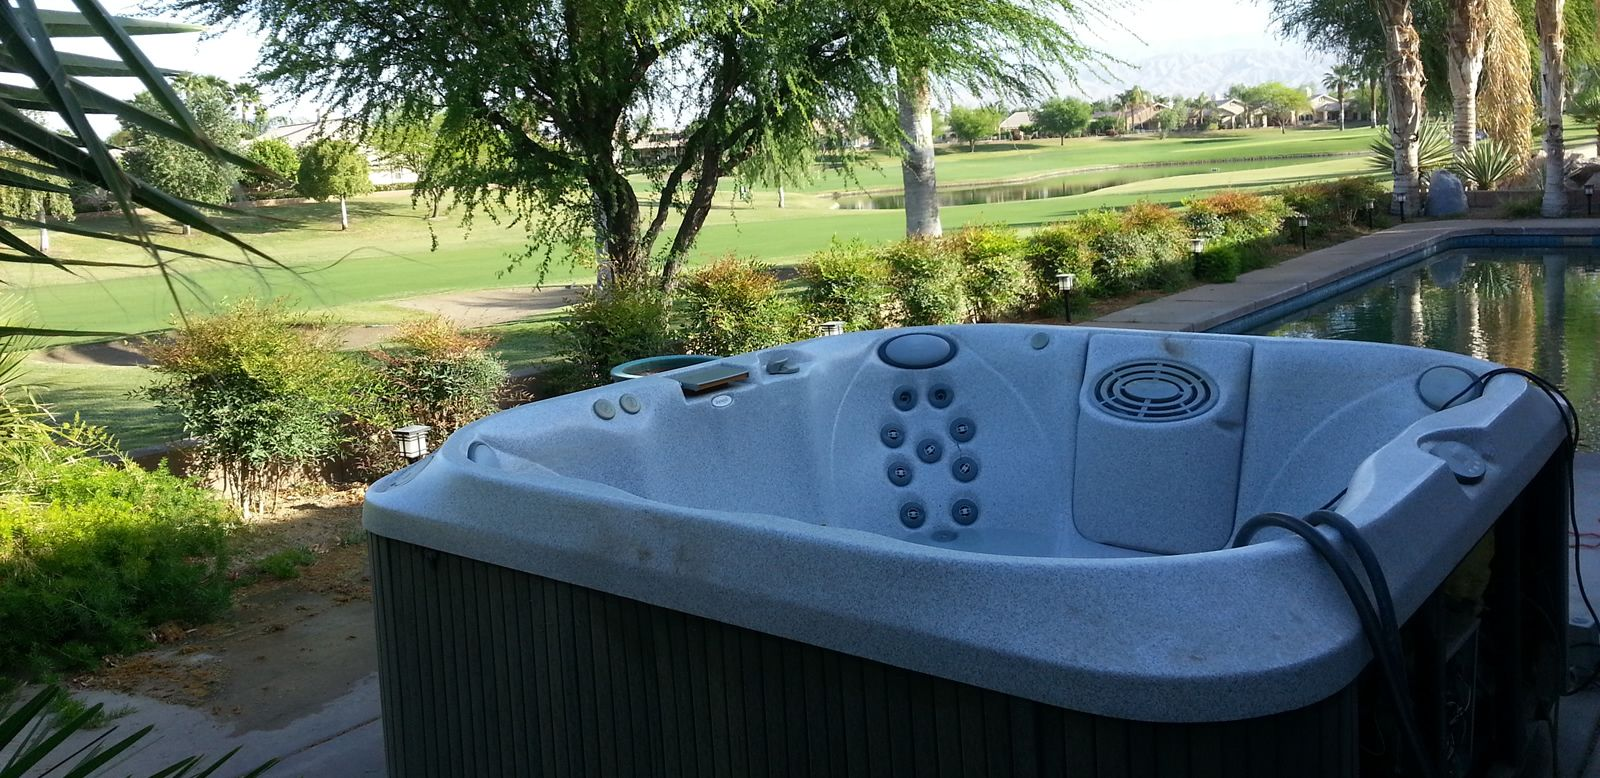 Above ground hot tub removal in Santa Barbara CA before and after